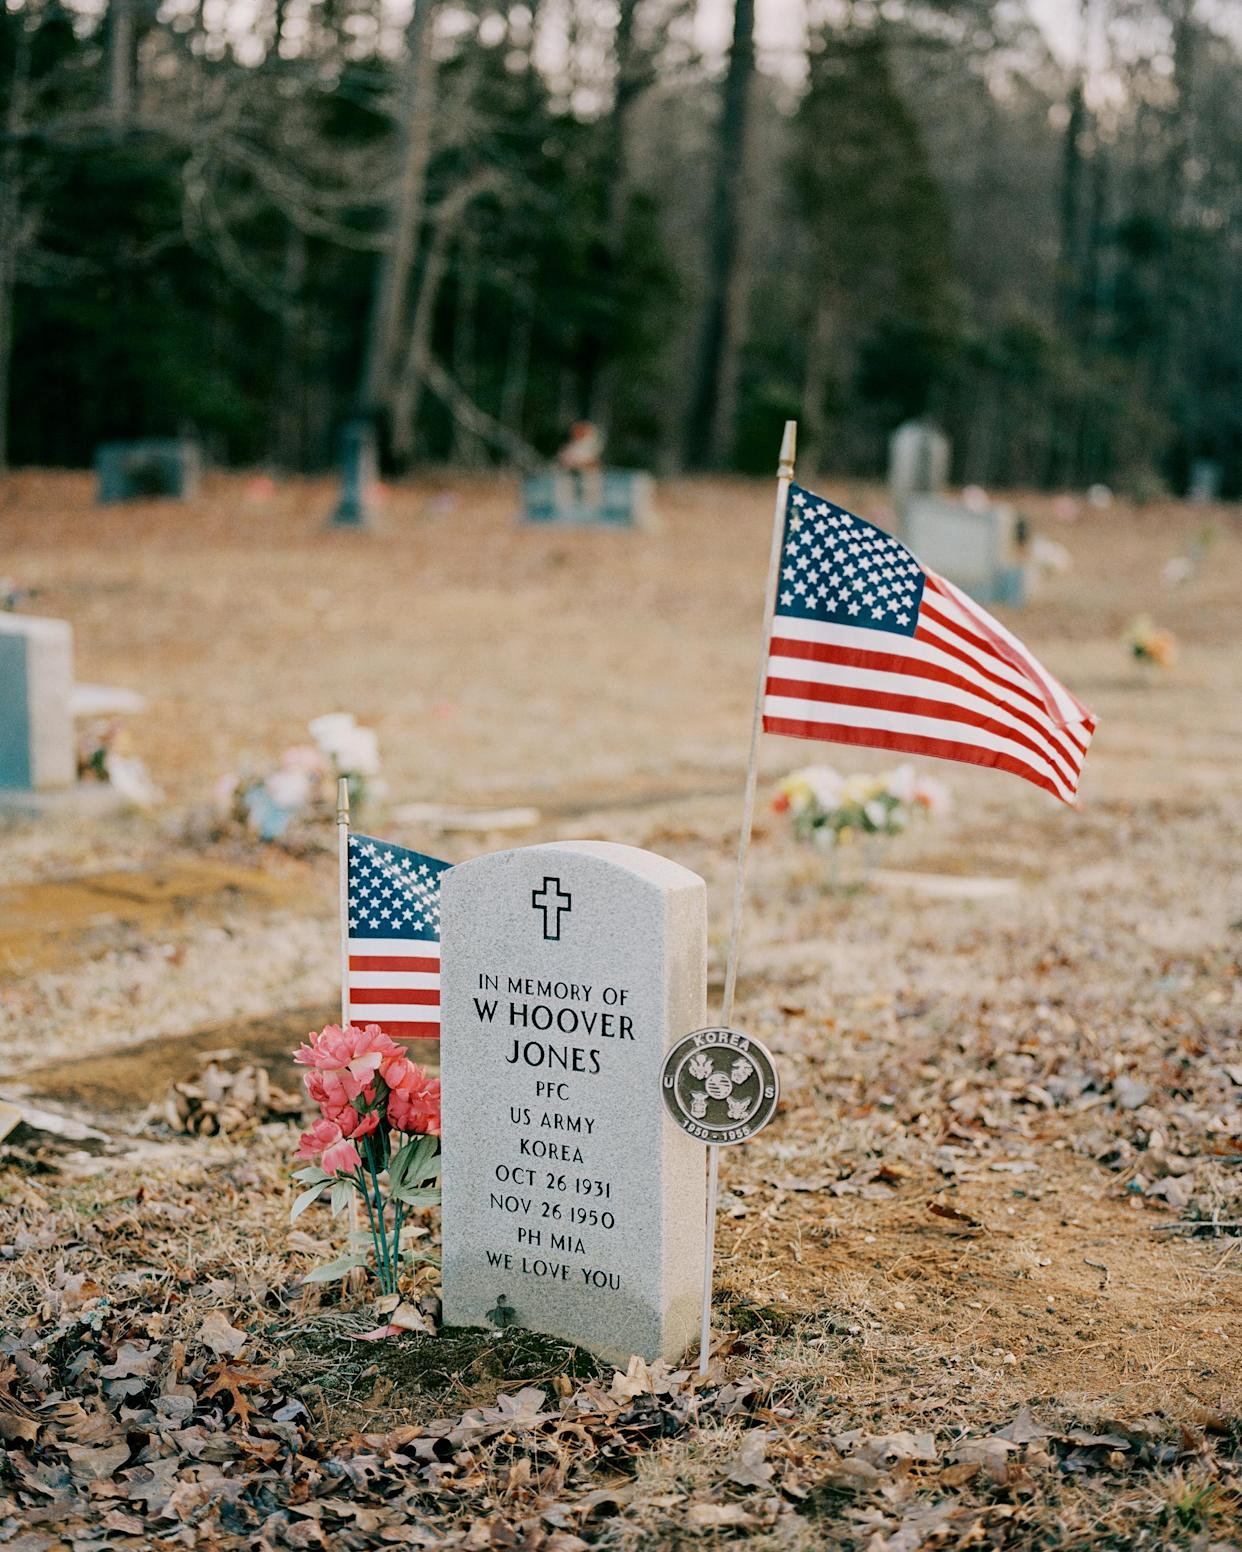 Hoover's head stone in North Carolina, photographed in February; the grave below remains empty.